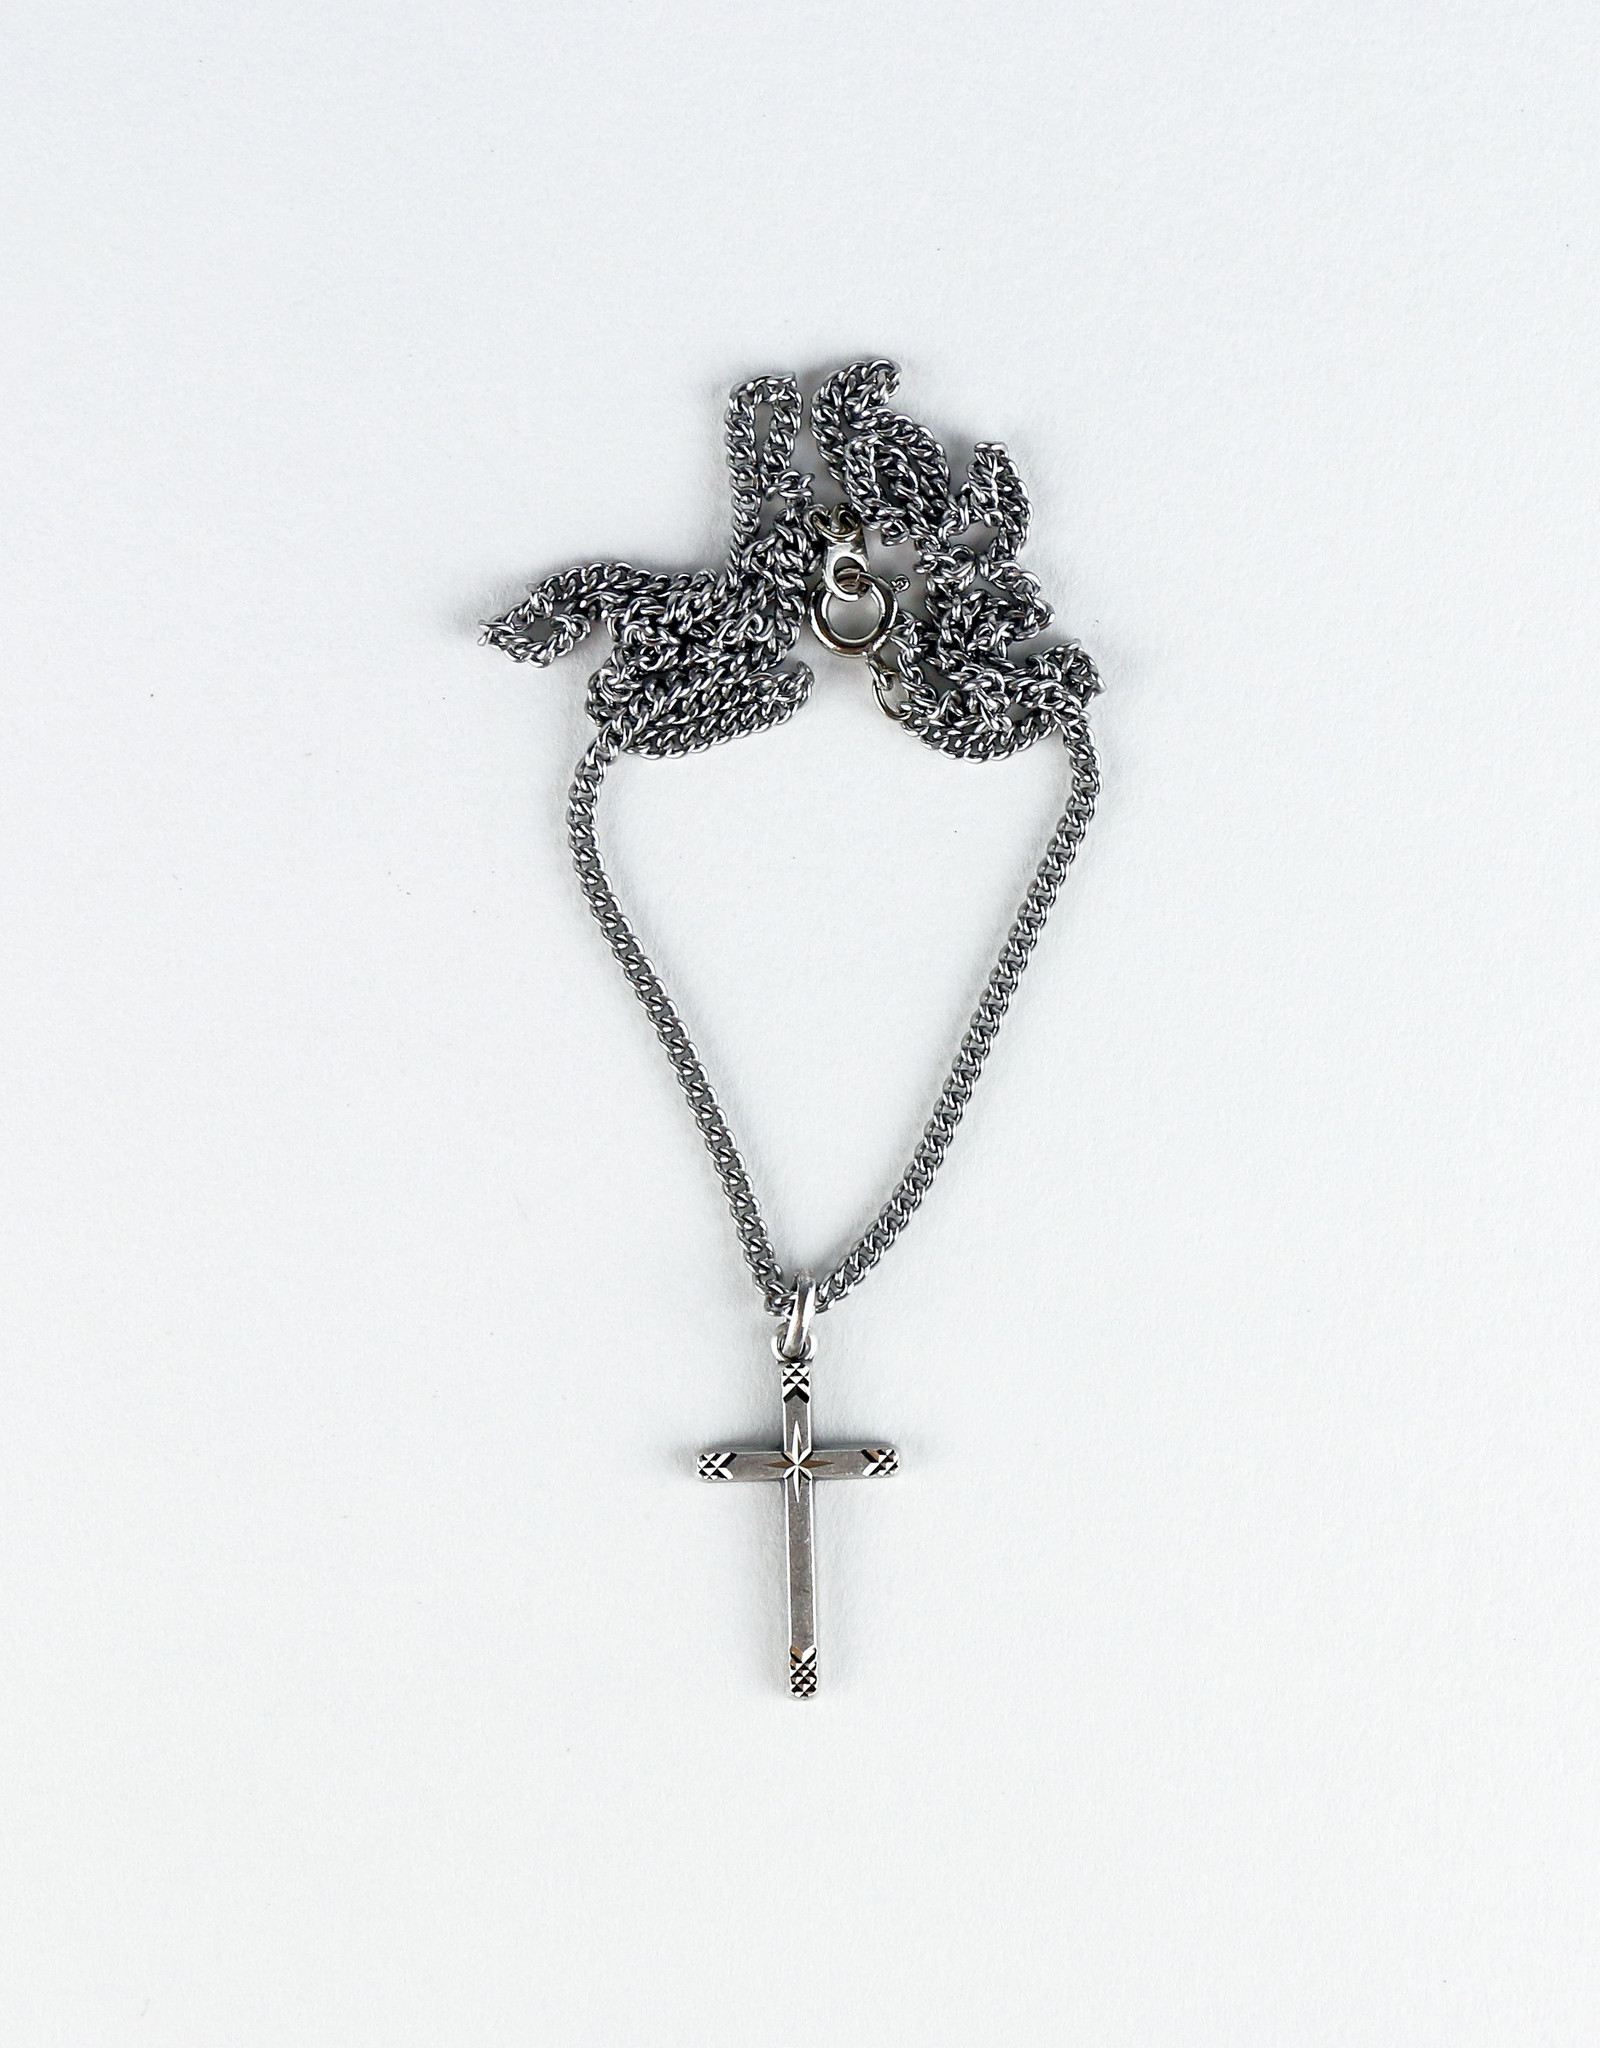 Starred Cross and chain